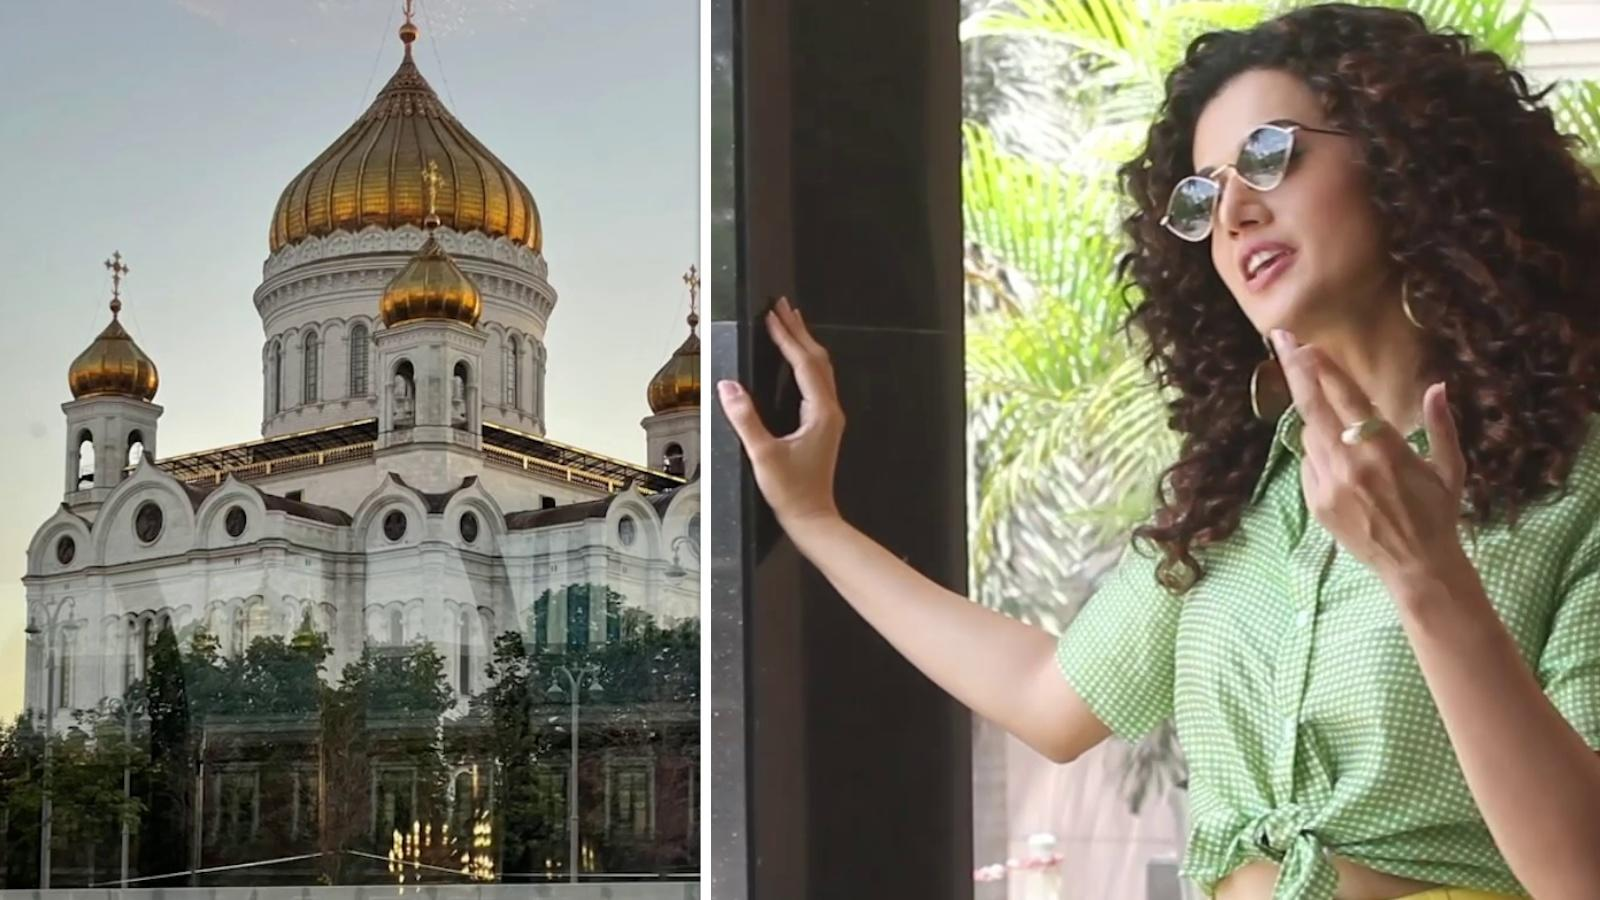 taapsee-pannu-says-wait-what-bangla-sahib-as-she-drops-a-picture-of-moscow-monument-that-looks-a-lot-like-delhis-iconic-gurudwara